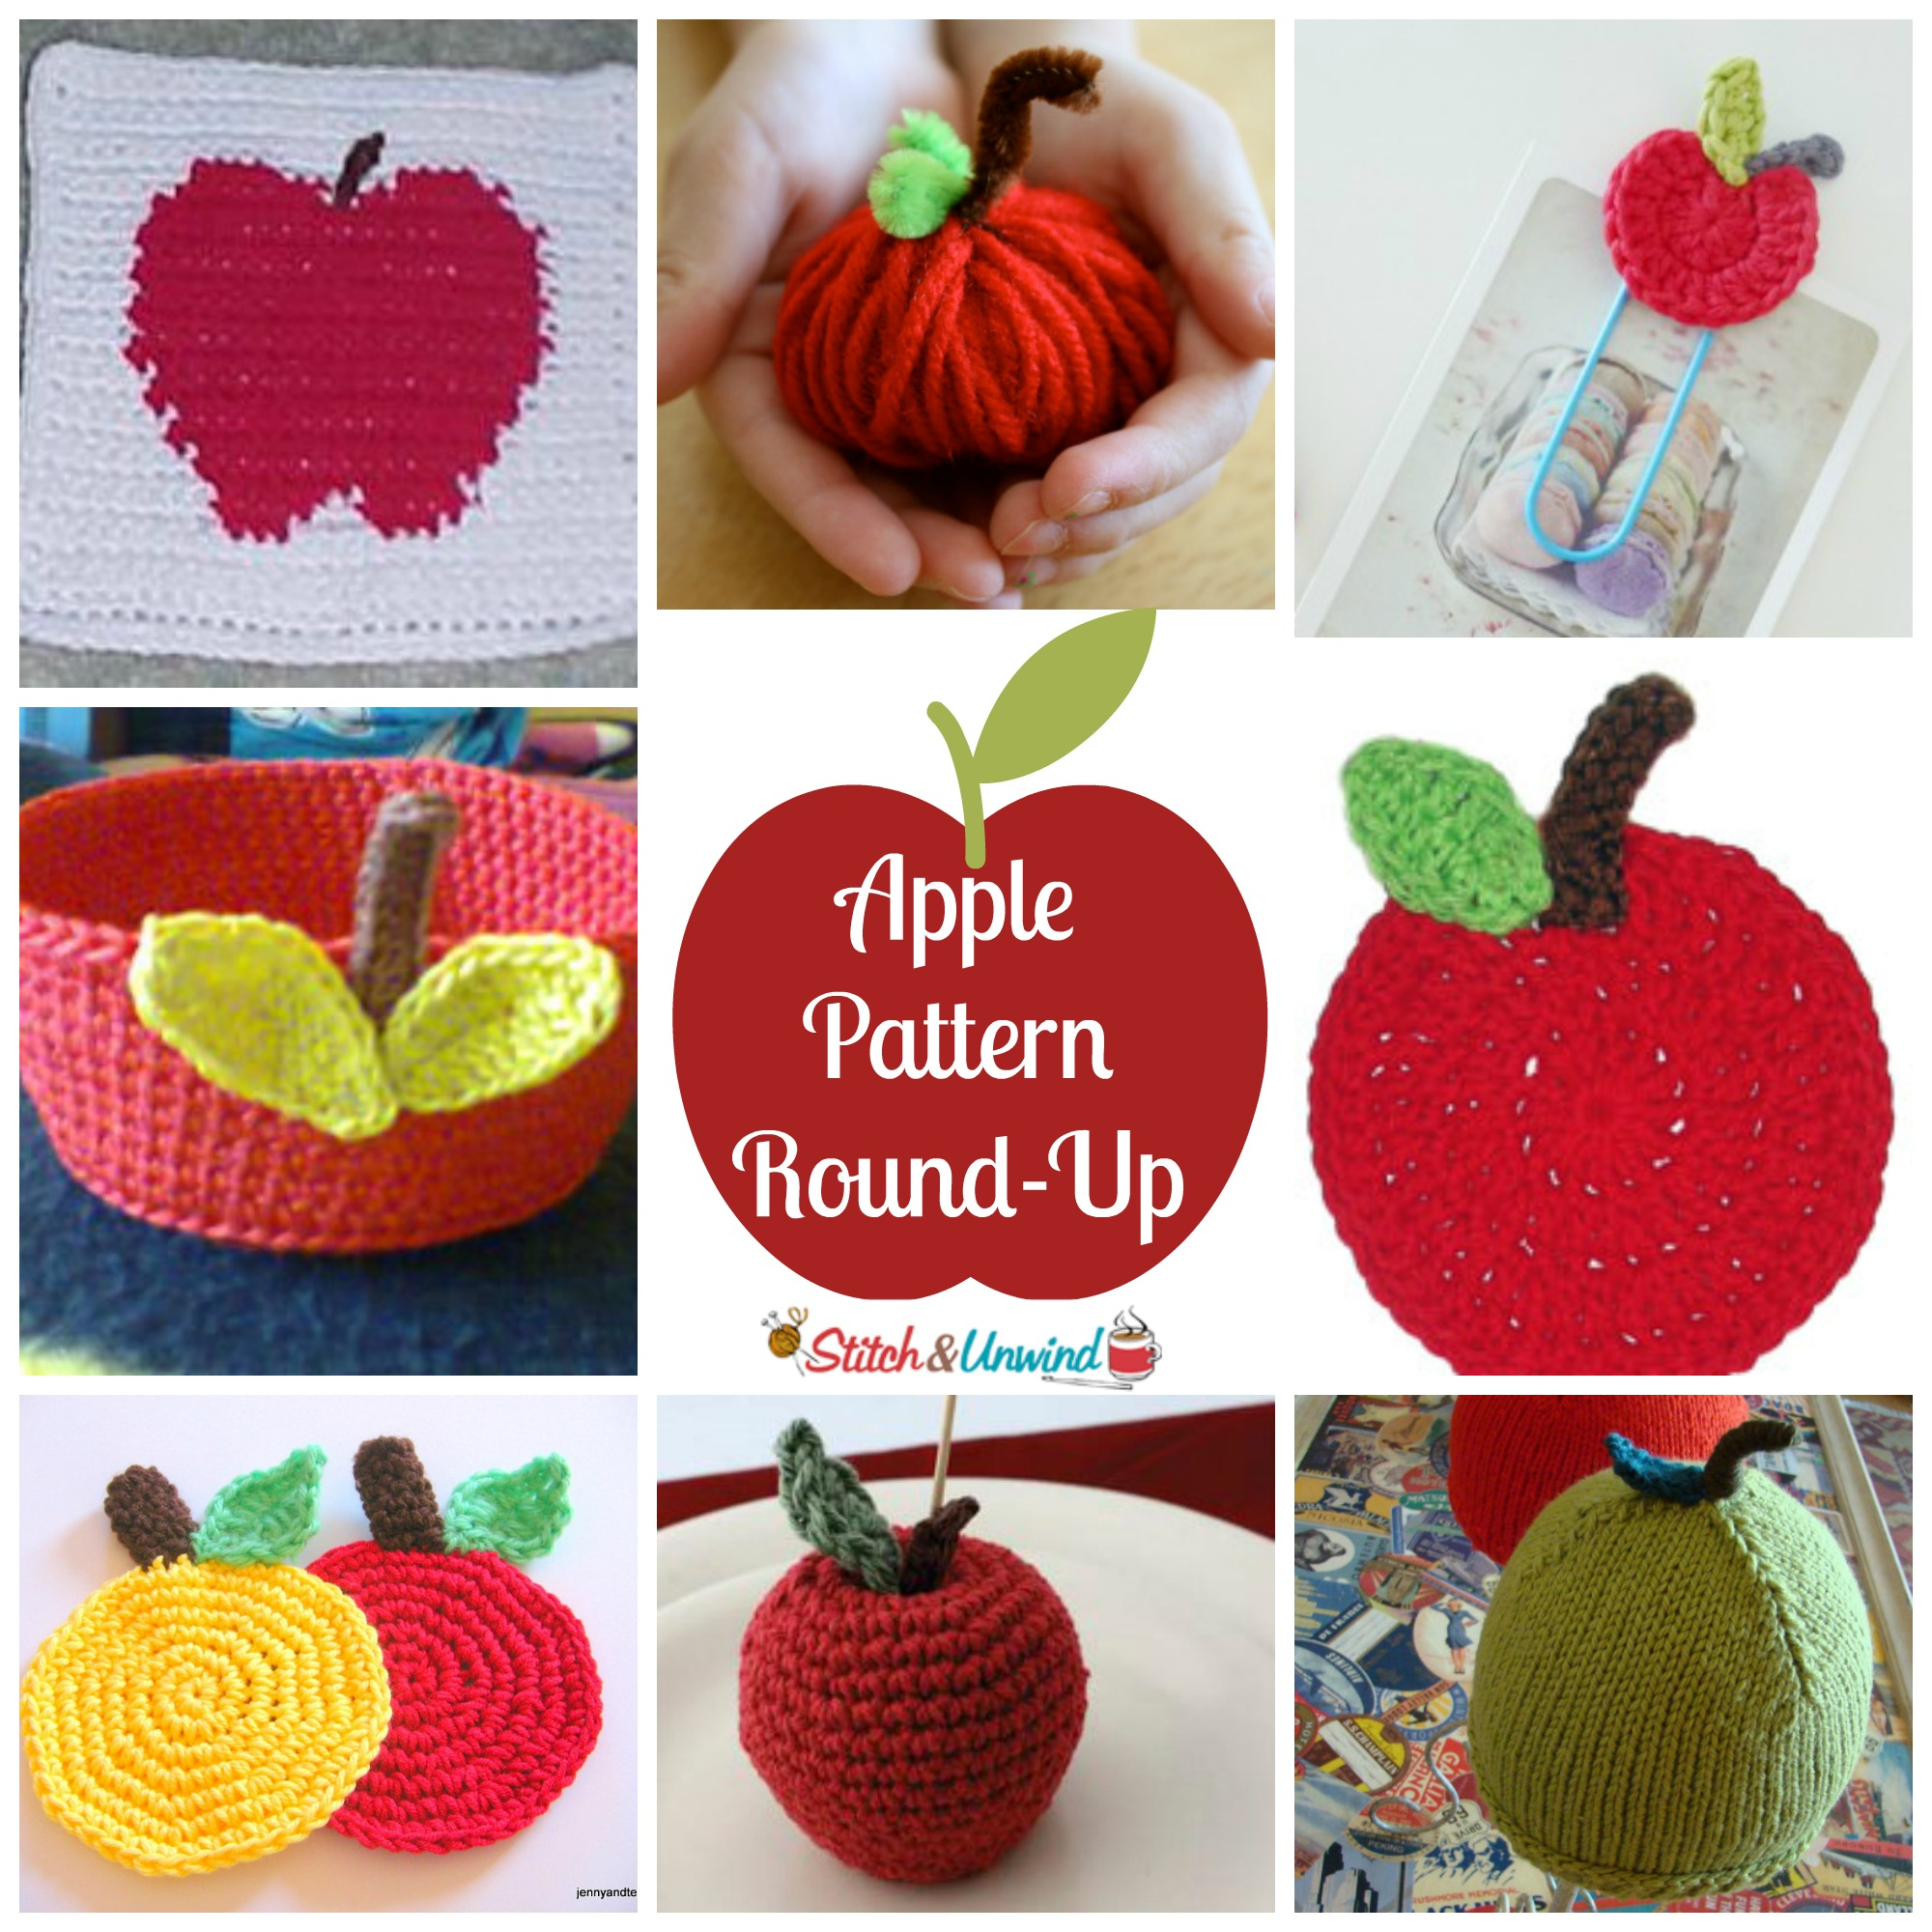 73dc007b4 How About Them Apples  Crochet   Knitting Pattern Round-Up - Stitch ...